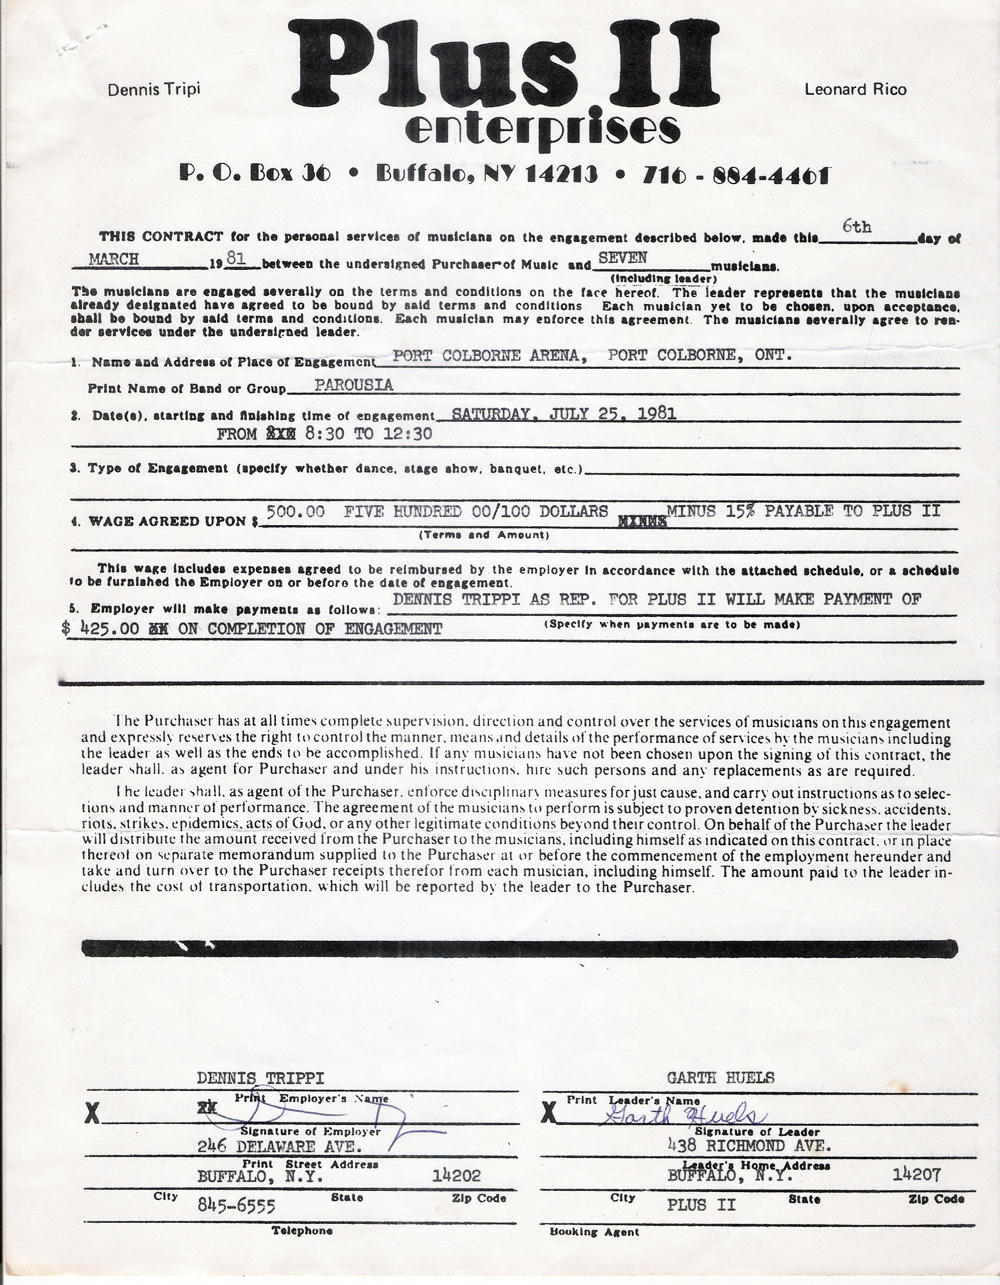 Plus II contract - Original Contract Garth Huels March 1981